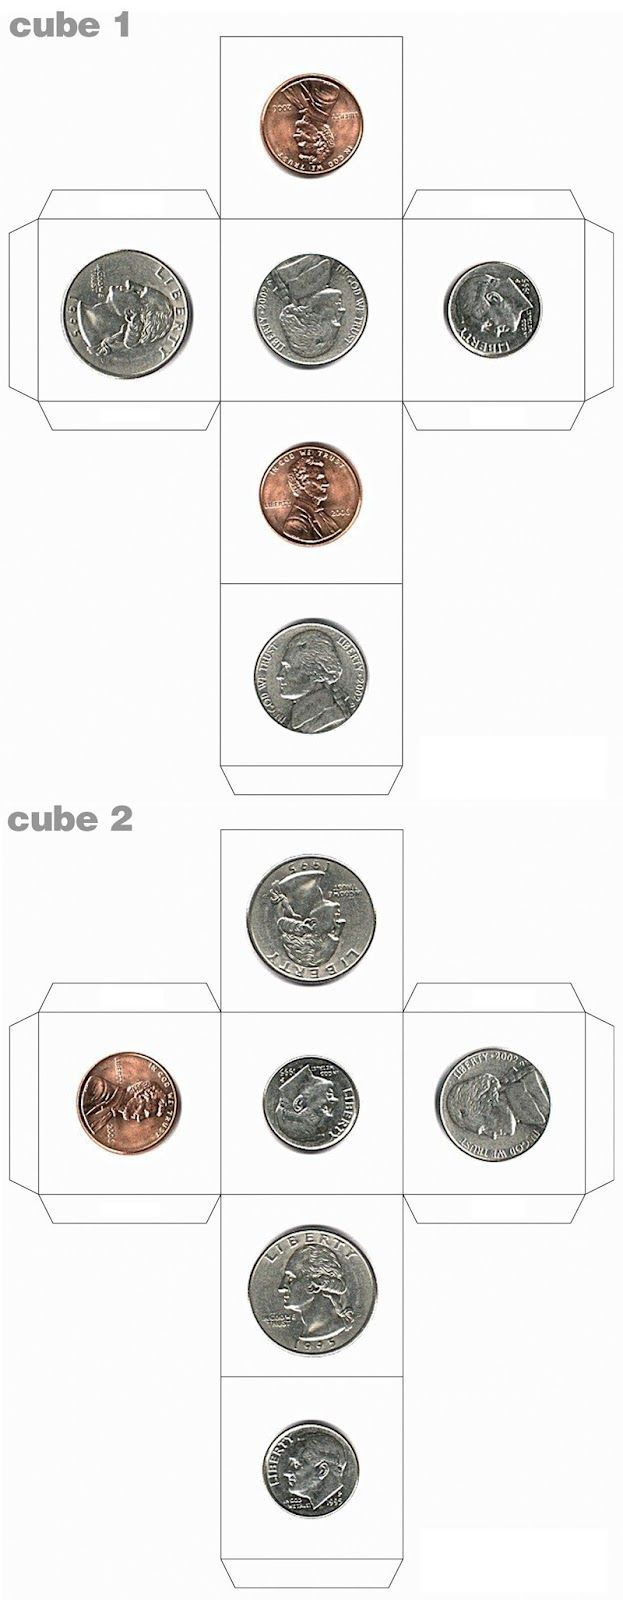 Money Dice - I like this. It would be fun to think up some games for practicing adding coins - which my class sorely needs!